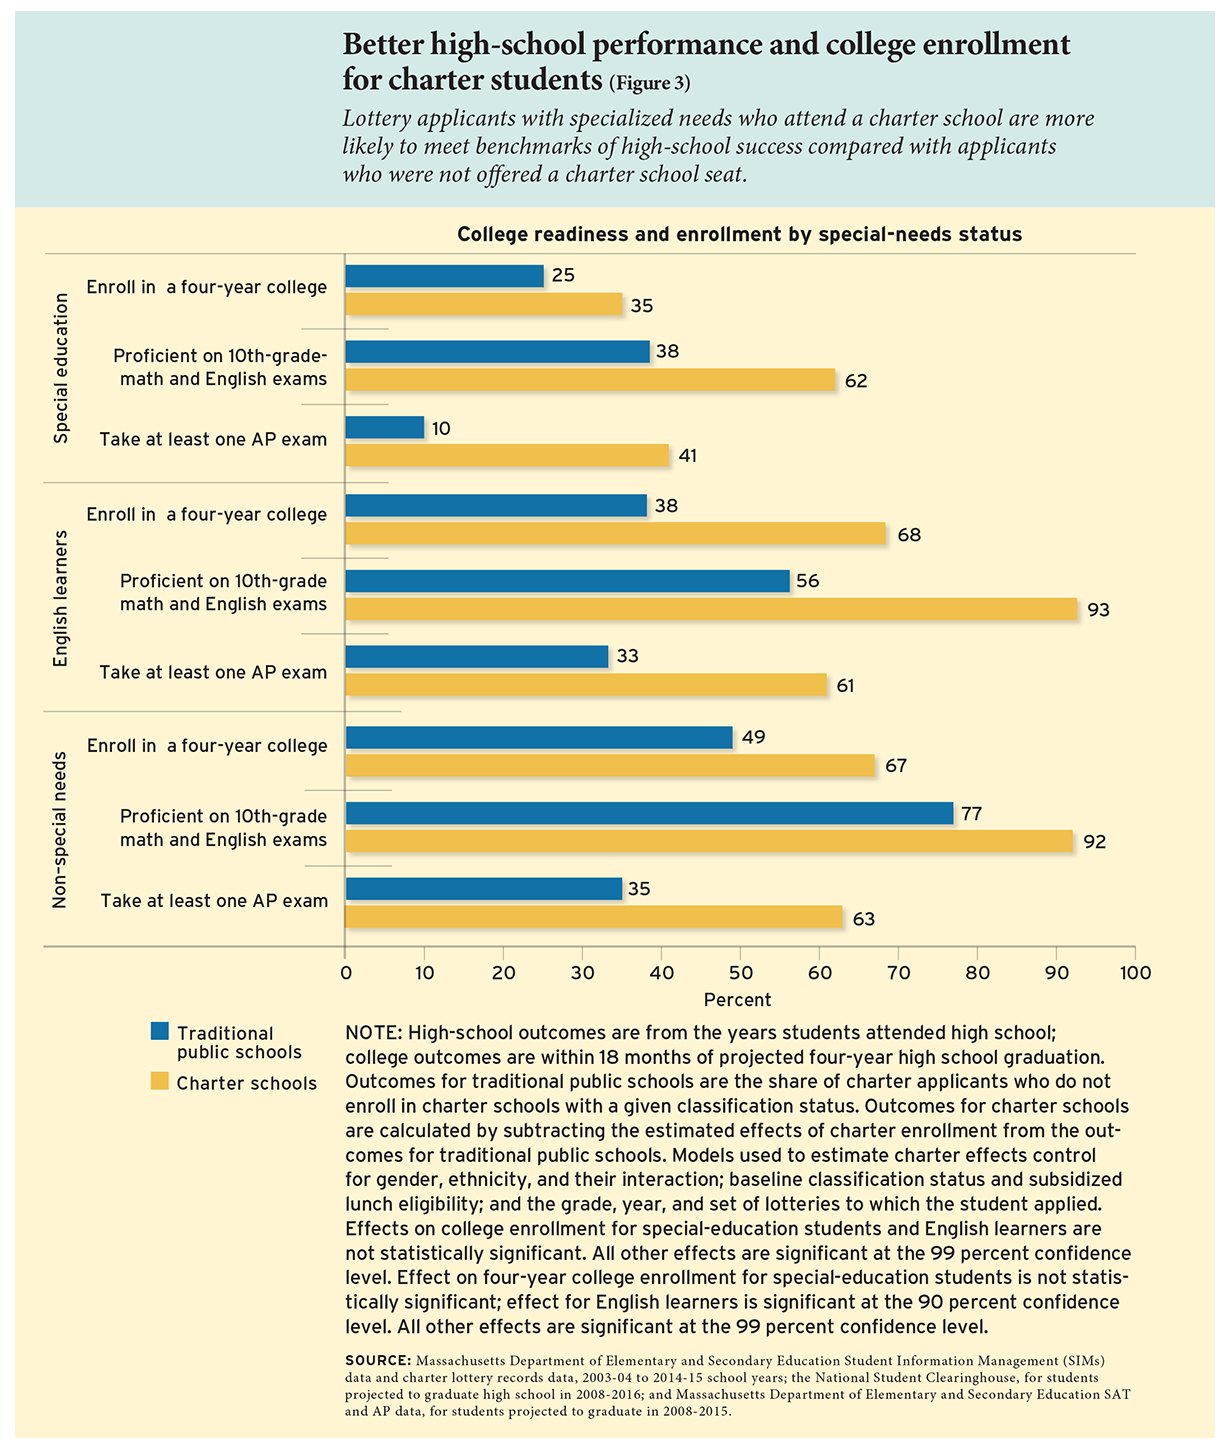 Better high-school performance and college enrollment for charter students (Figure 3)